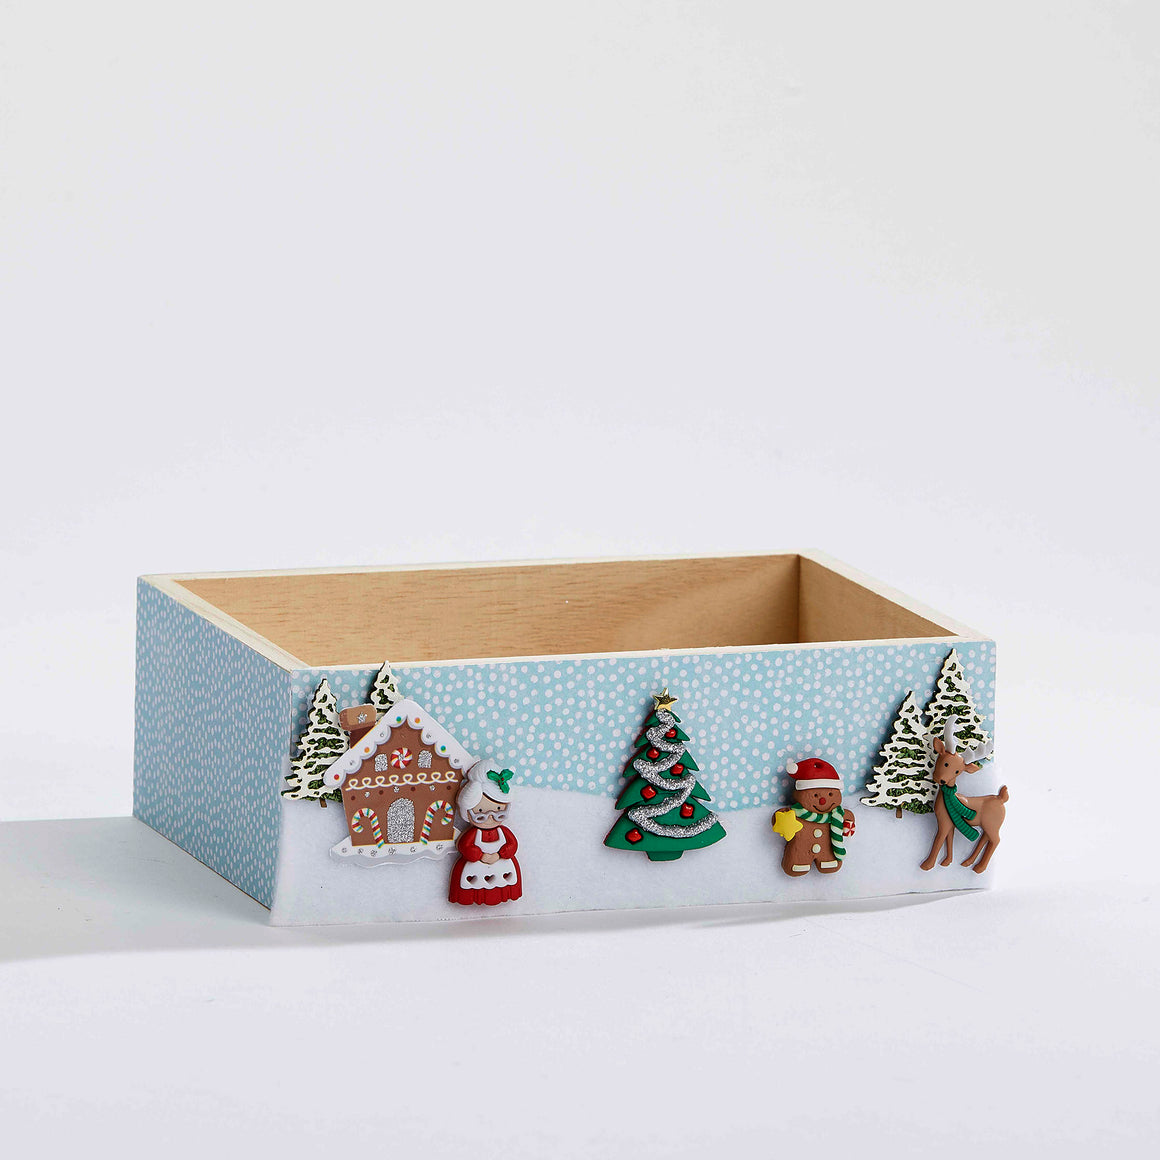 Mrs. Claus' House Keepsake Box